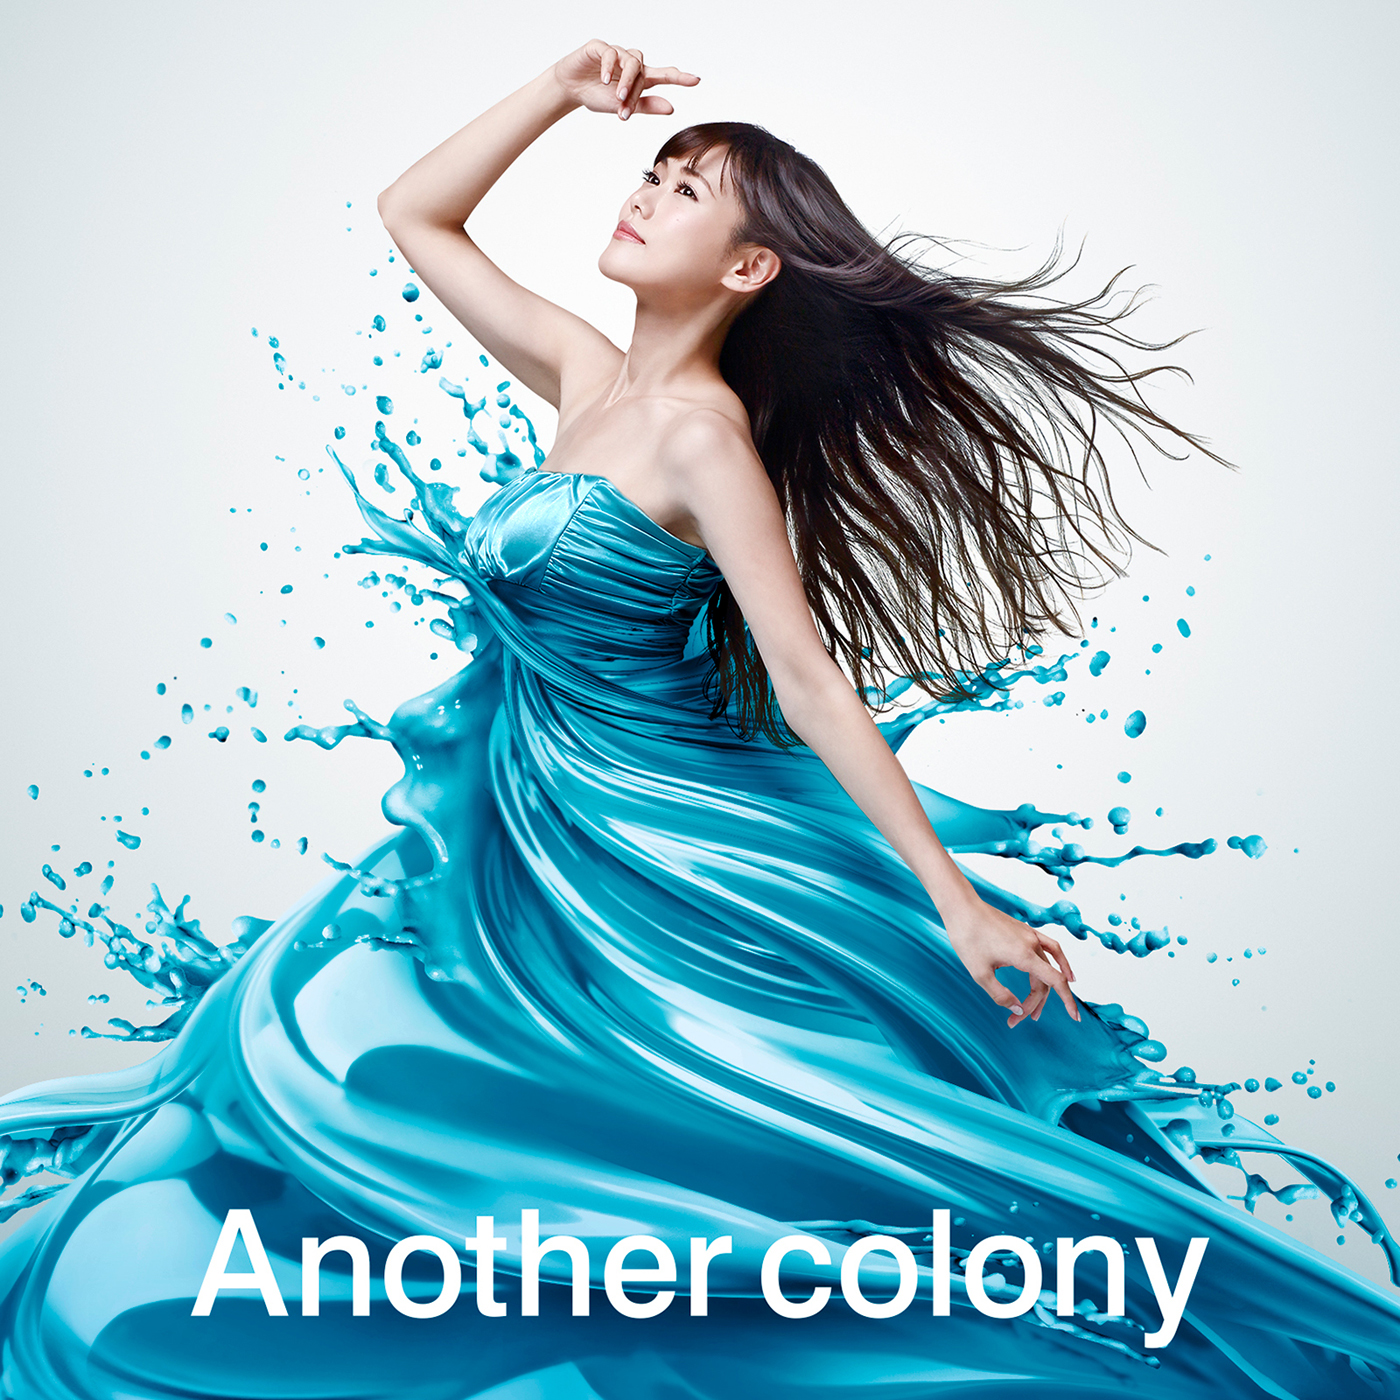 20181108.0332.08 Miho Karasawa - Another colony cover.jpg